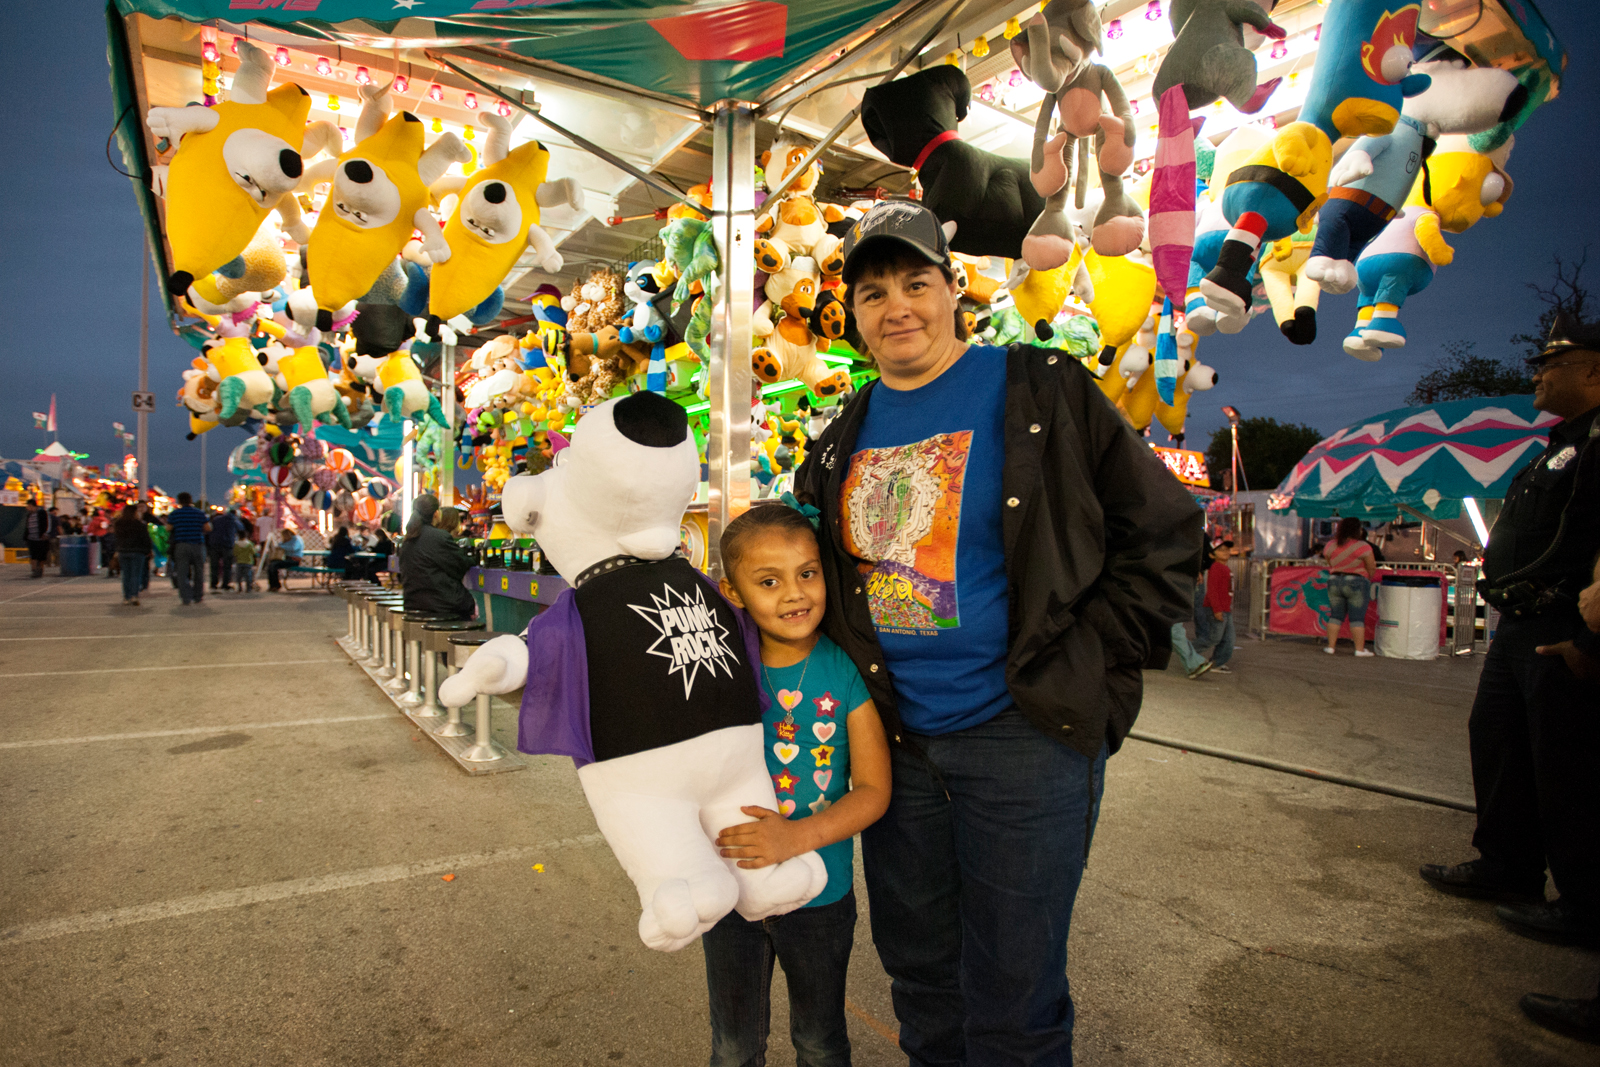 Pat Bravo poses with daughter Terry, age 6, after winning the water gun race at Fiesta Carnival. Photo by Corey Leamon.